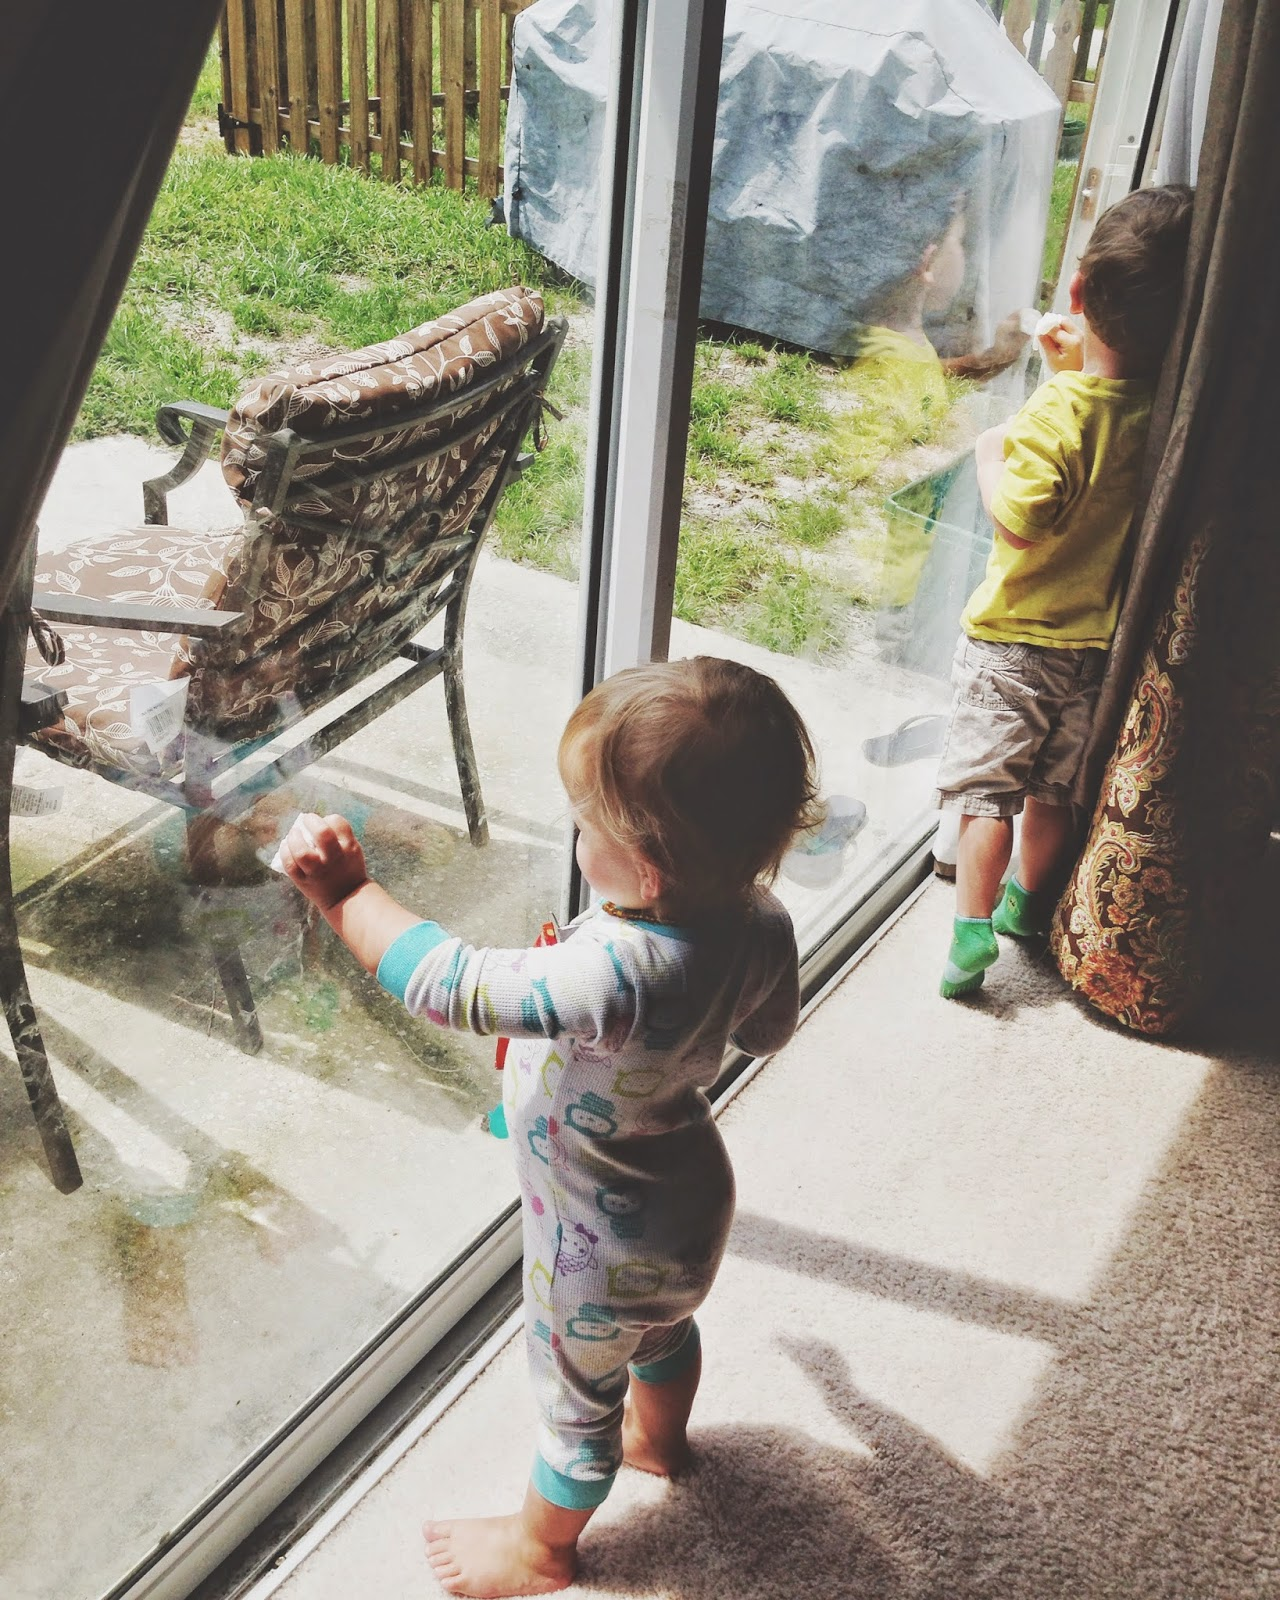 kids in pyjamas pjs at a window